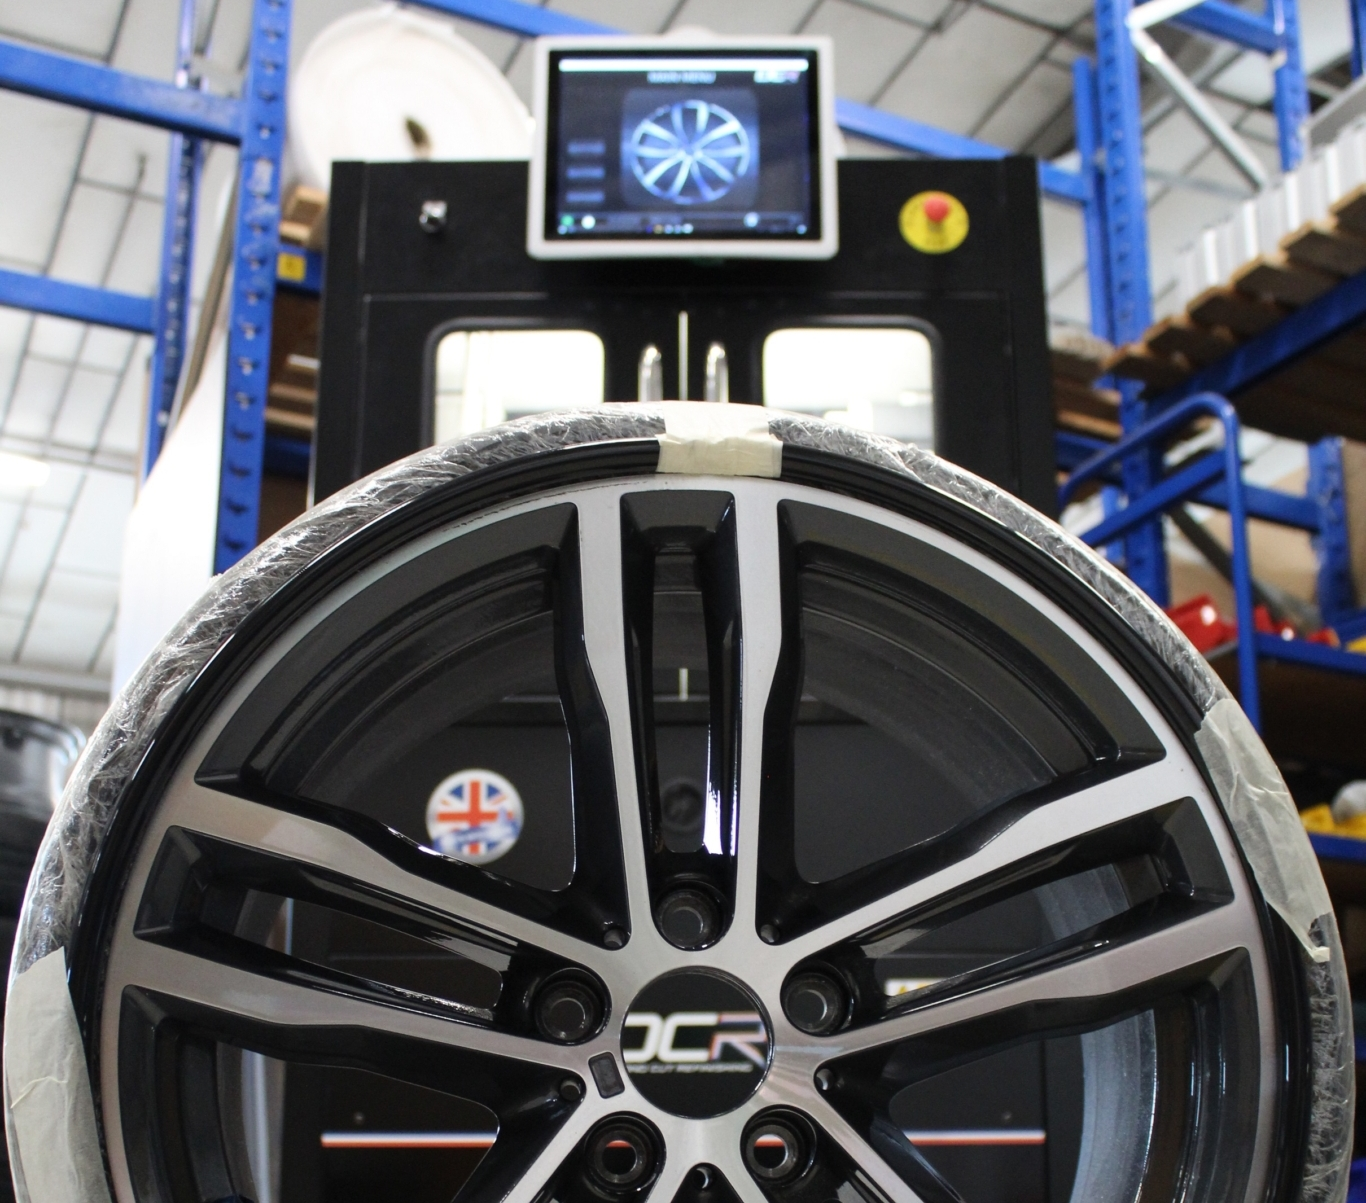 DCR presents 'cutting edge technology' for alloy wheel refurbishment